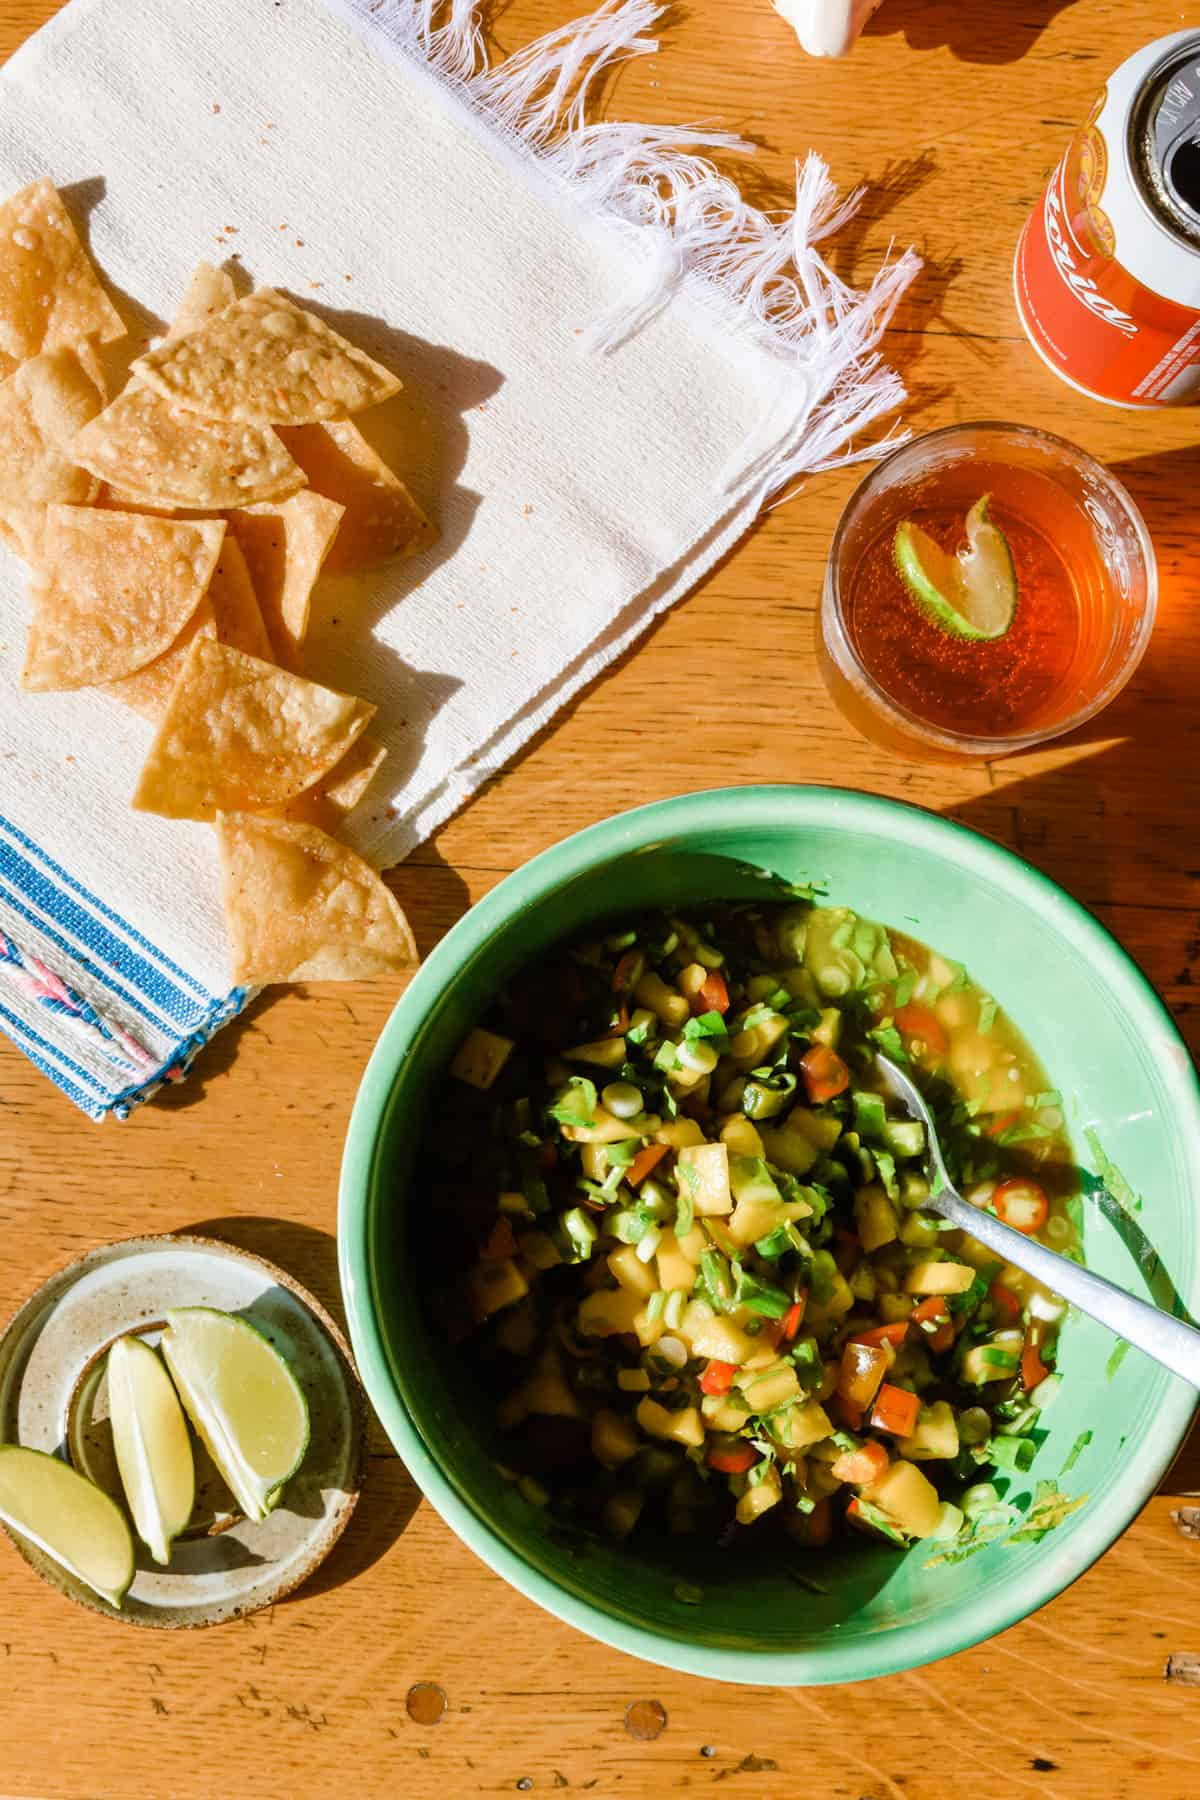 A green bowl with mango margarita salsa sitting on a wooden table with lime wedges, tortilla chips, and a beer on the side.